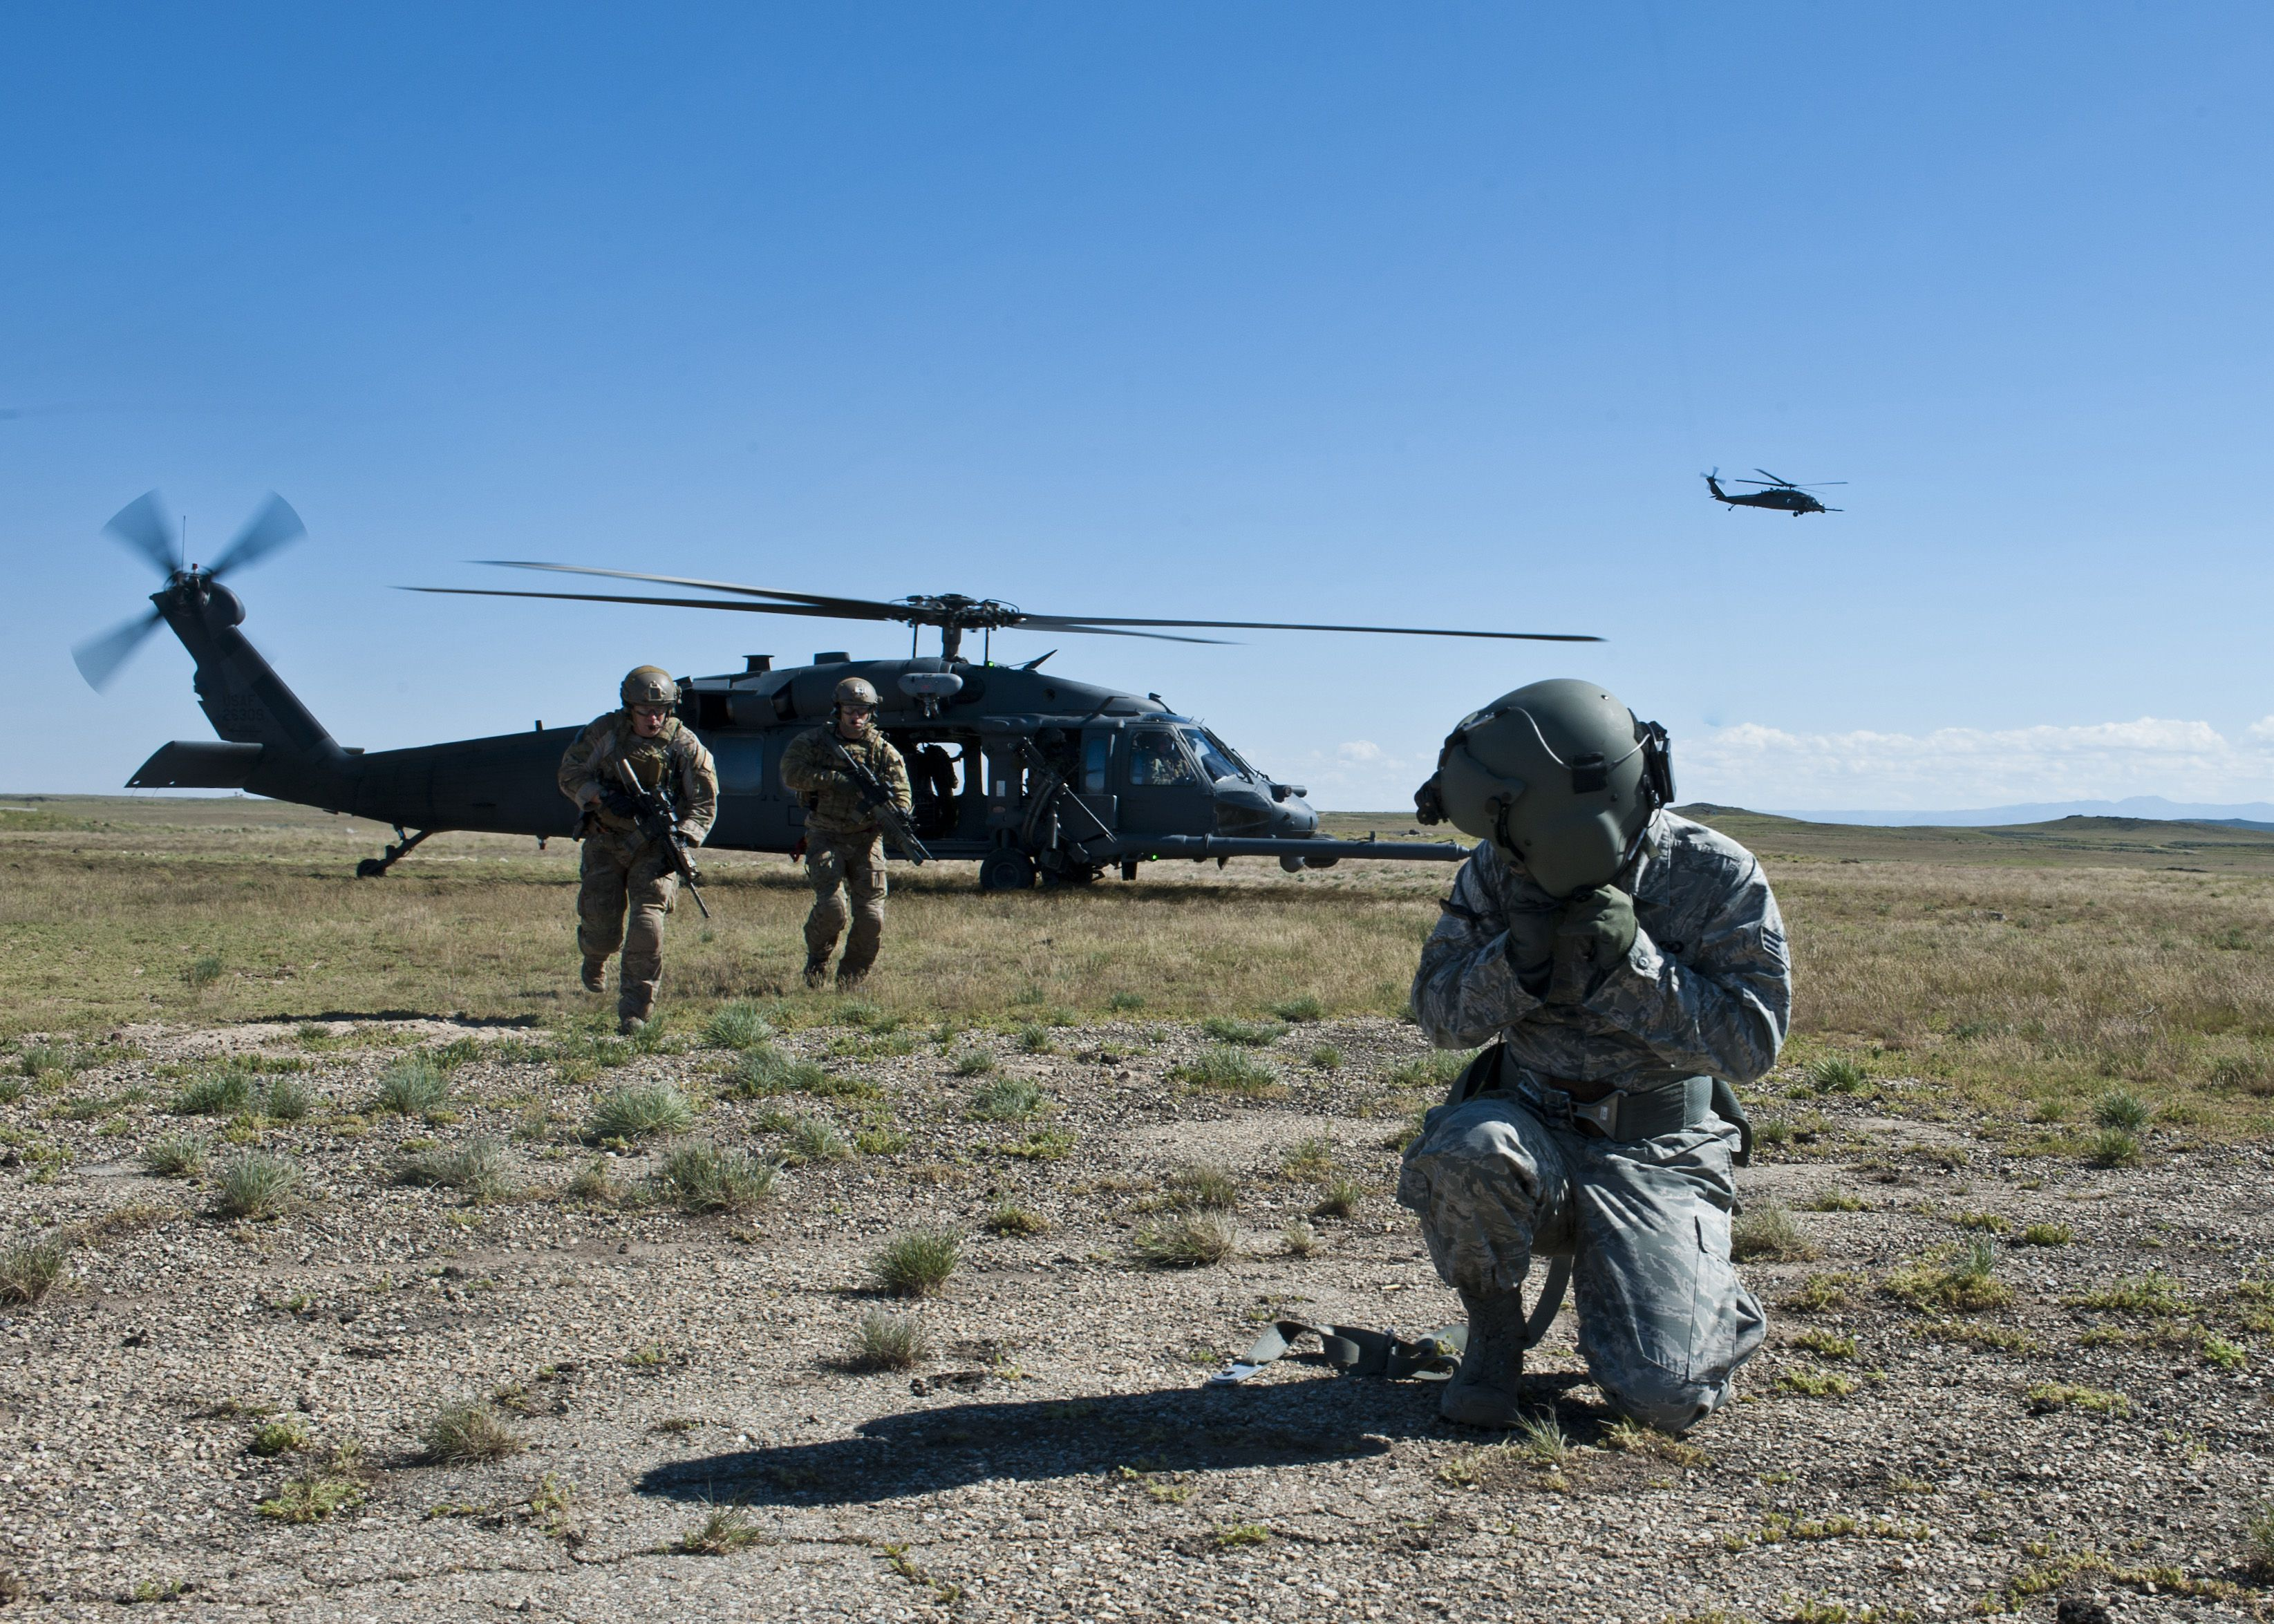 Siklorsky UH-60 Blackhawk. Pararescuemen assigned to the 347th Rescue Group, at Moody Air Force Base, Ga., rescue a simulated survivor during the U.S. Air Force Weapons School April 28, 2014, at Orchard Combat Training Center, Idaho. The Air Force Weapons School encompasses 18 squadrons, teaching 24 weapons instructor courses and 30 combat specialties at eight locations. (U.S. Air Force photo/Senior Airman Jason Couillard)